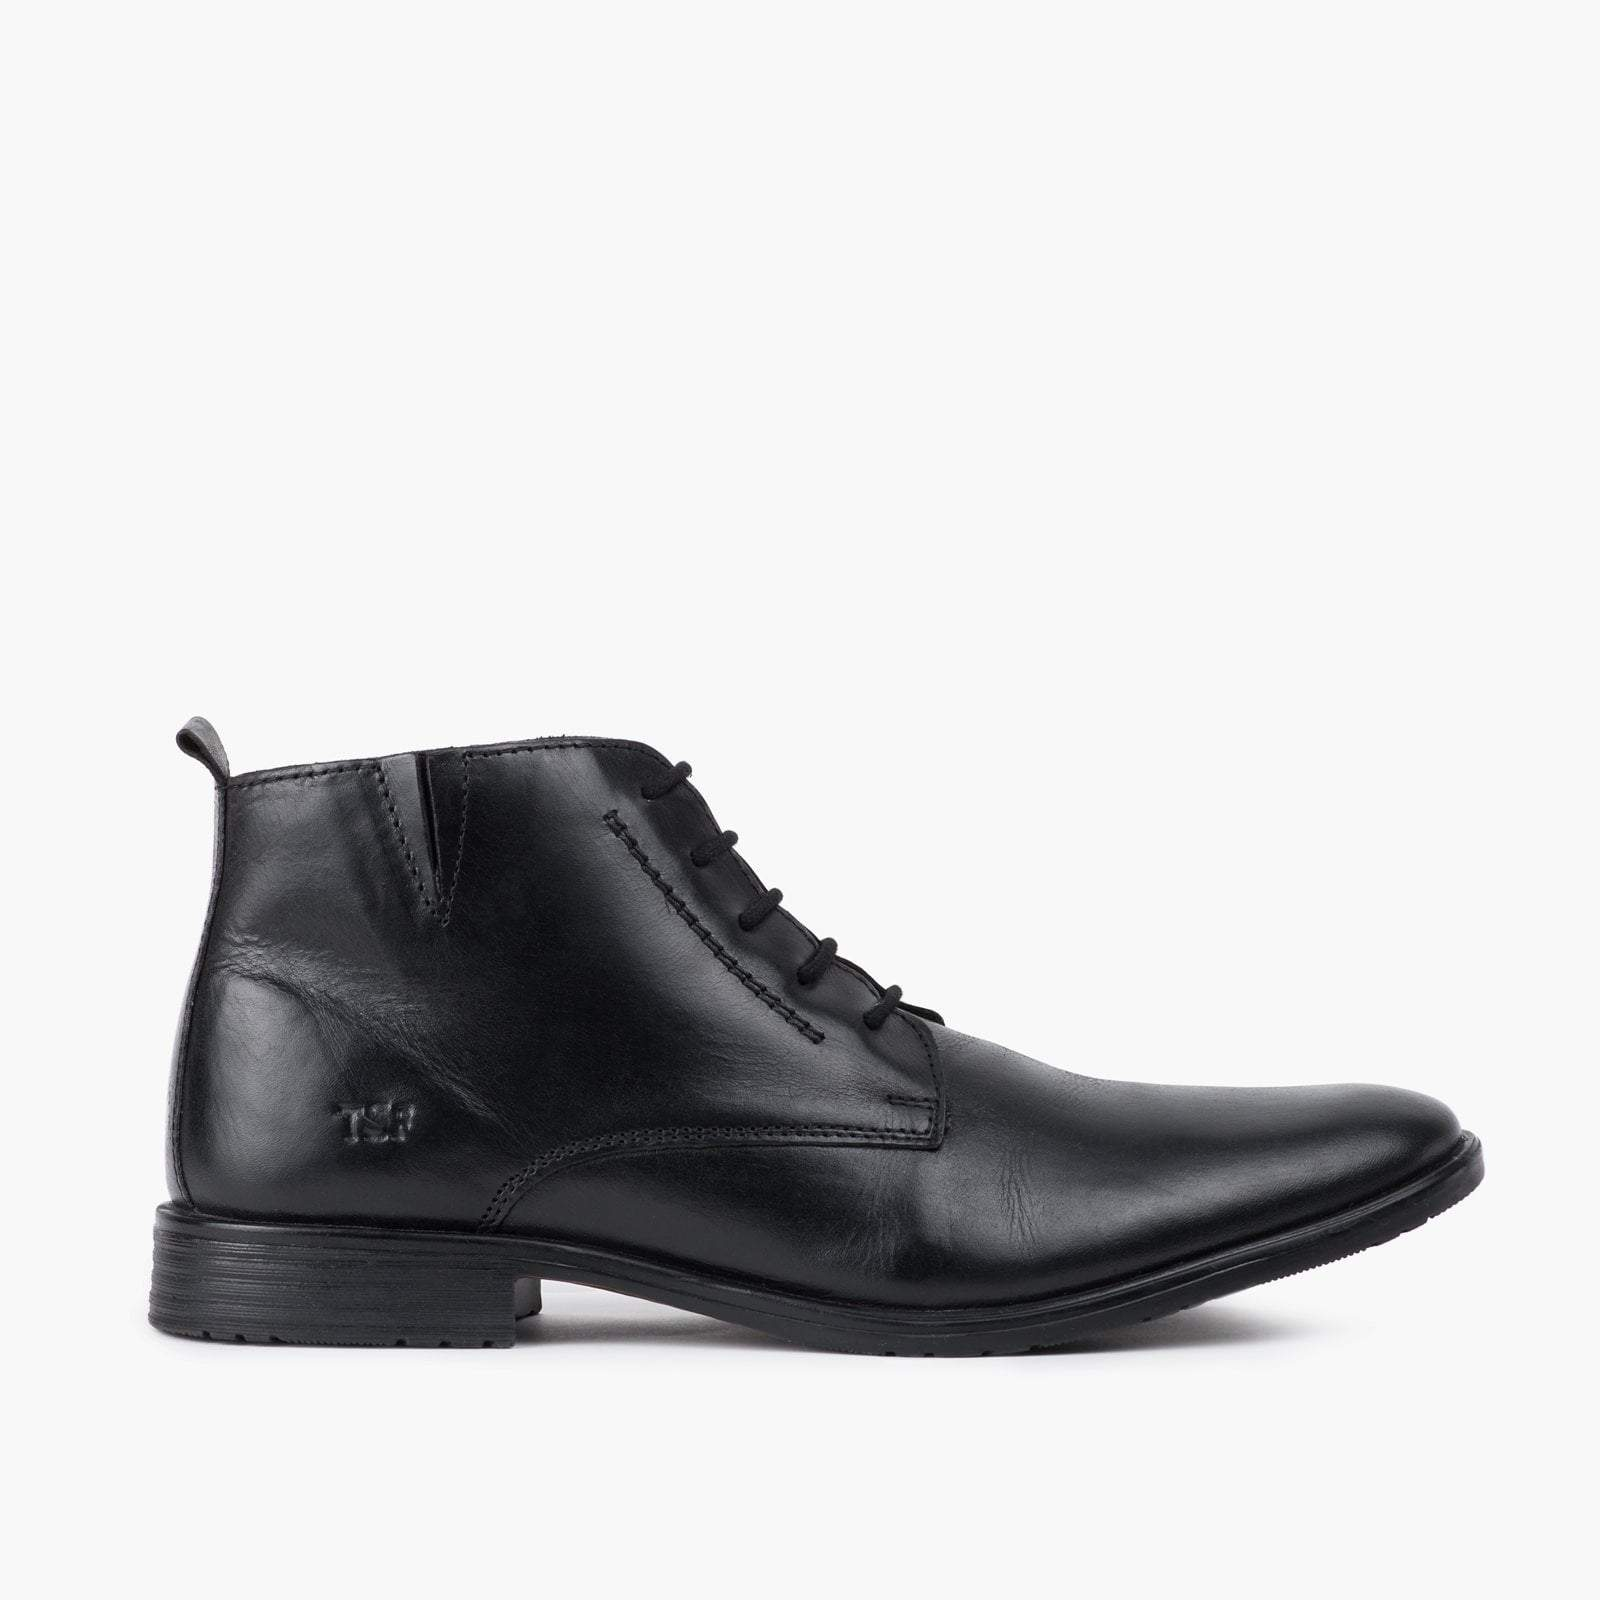 Redfoot Footwear UK 6 / EURO 39 / US 7 / Leather / Black Ernie Black Boot